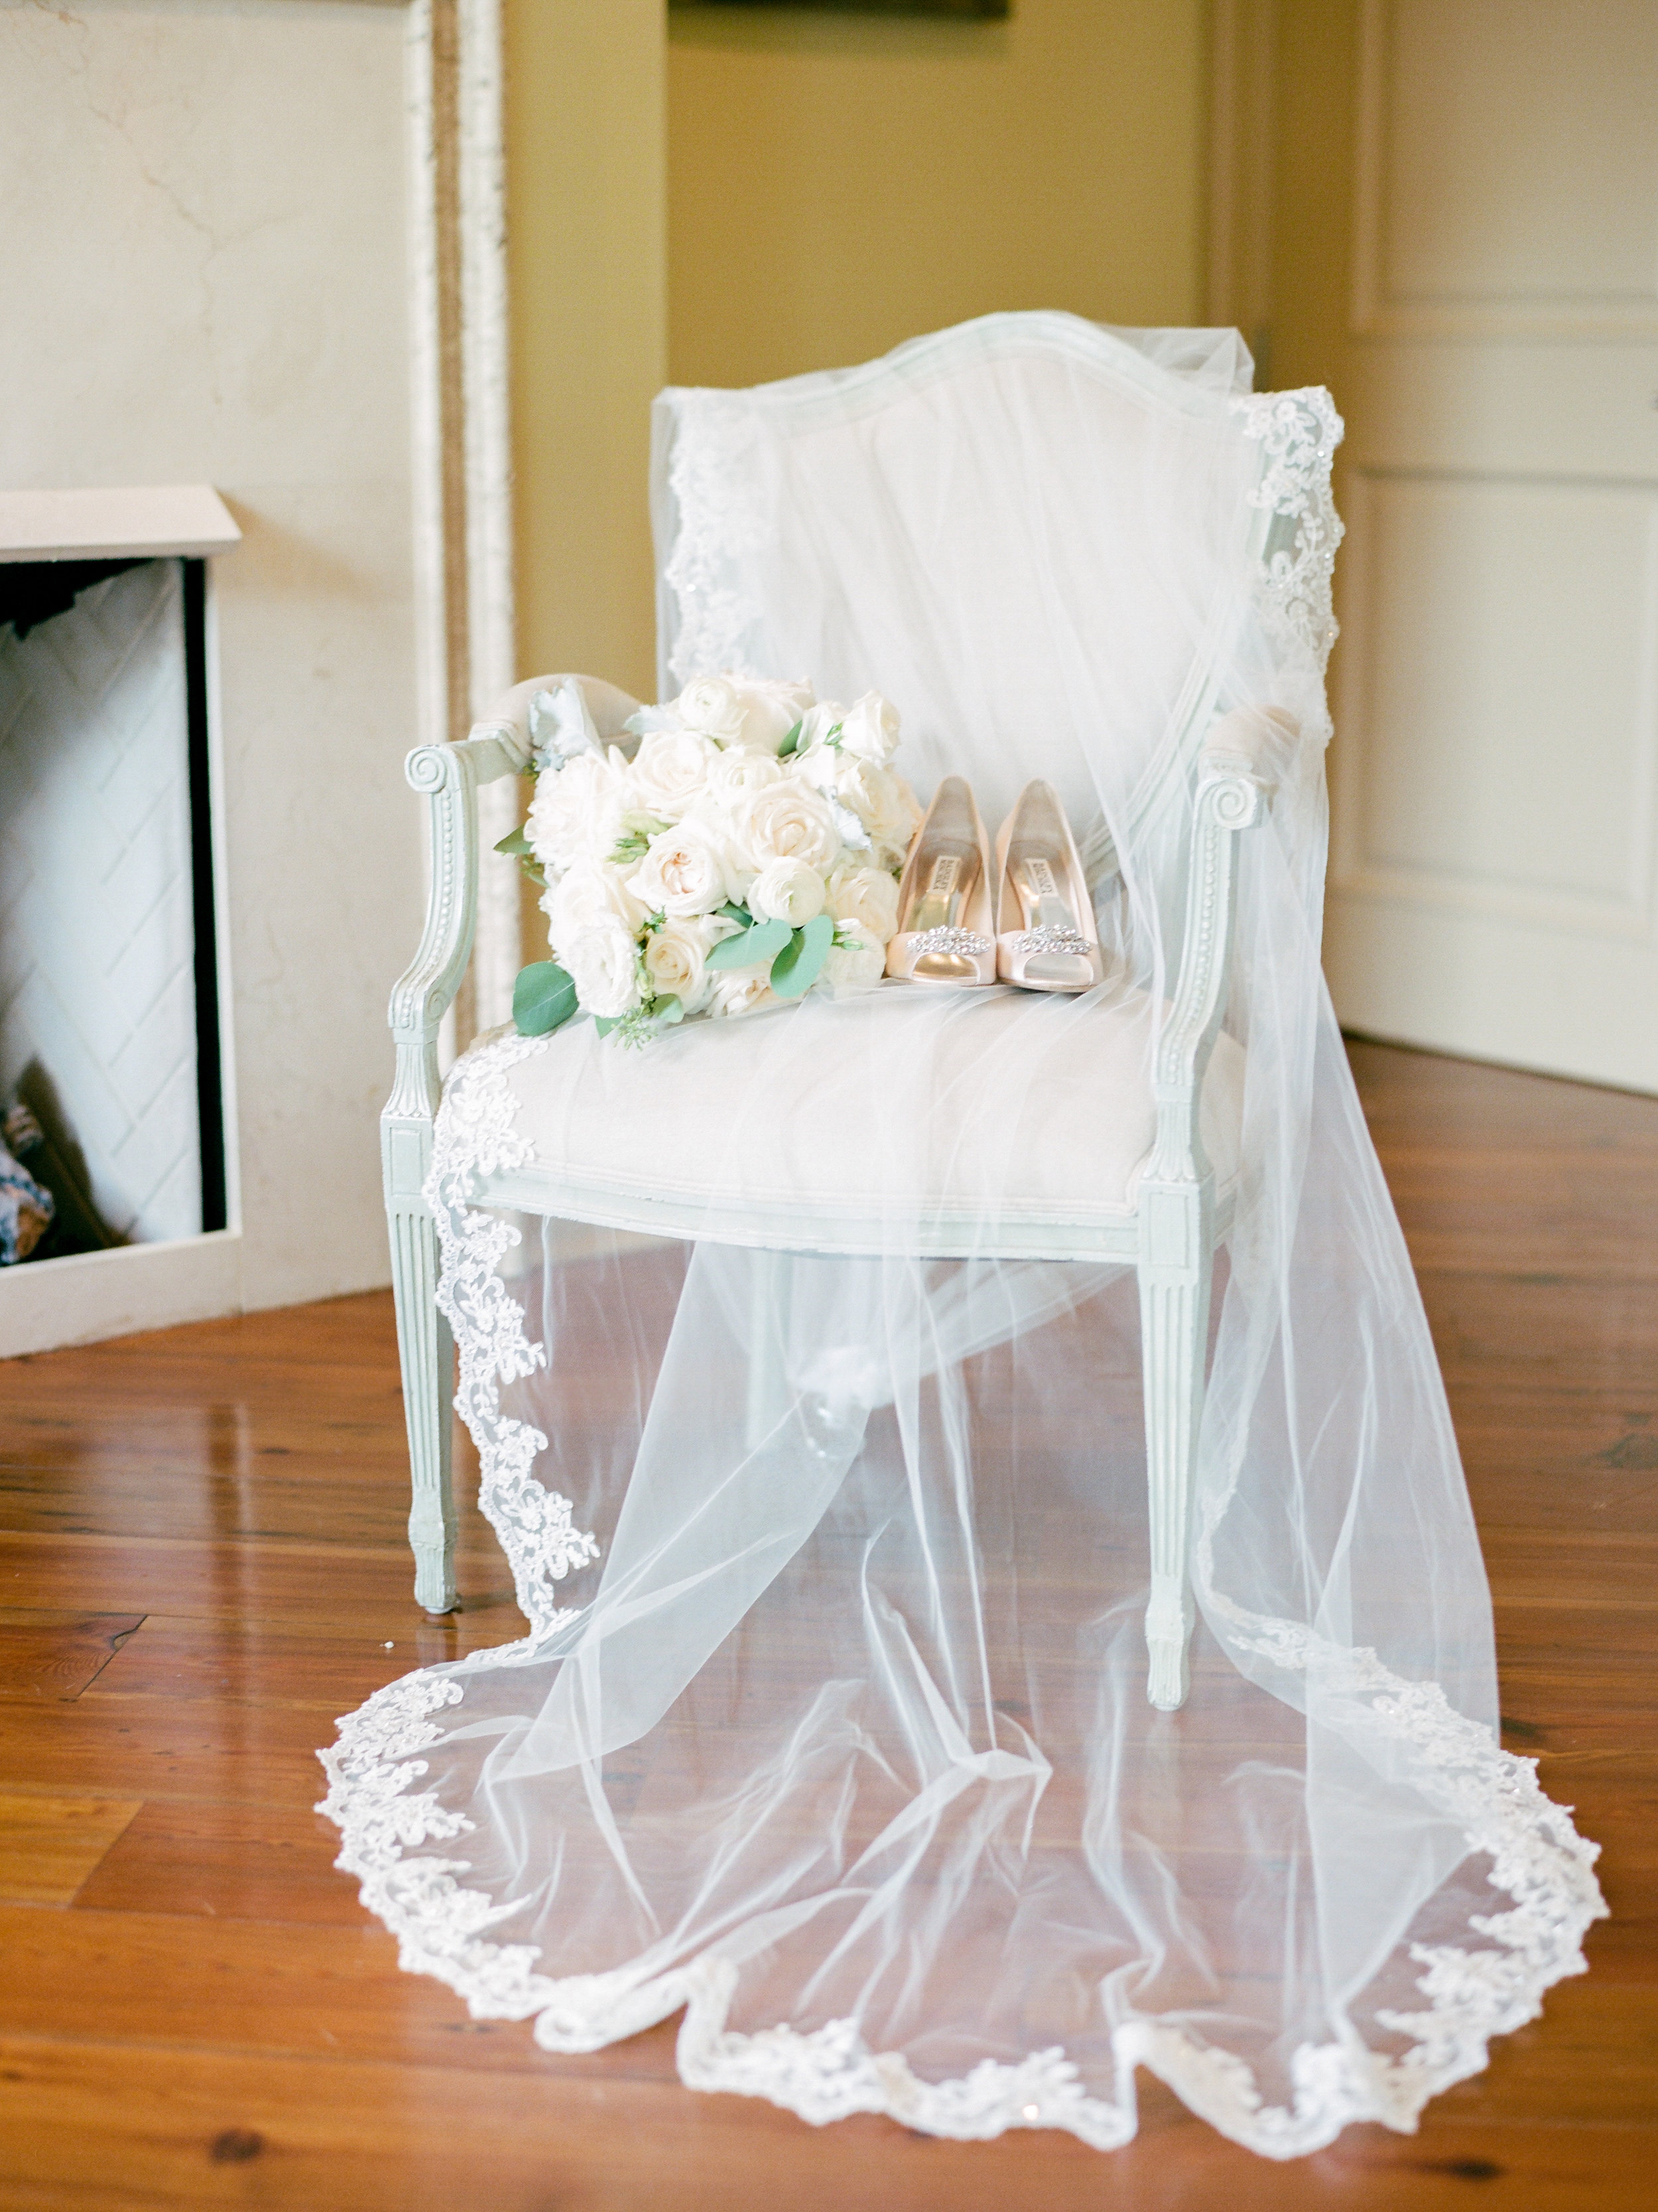 Southern Fete, Southern Wedding, Flowers by Rodney, Wedding shoes, Sarah Beth Photography